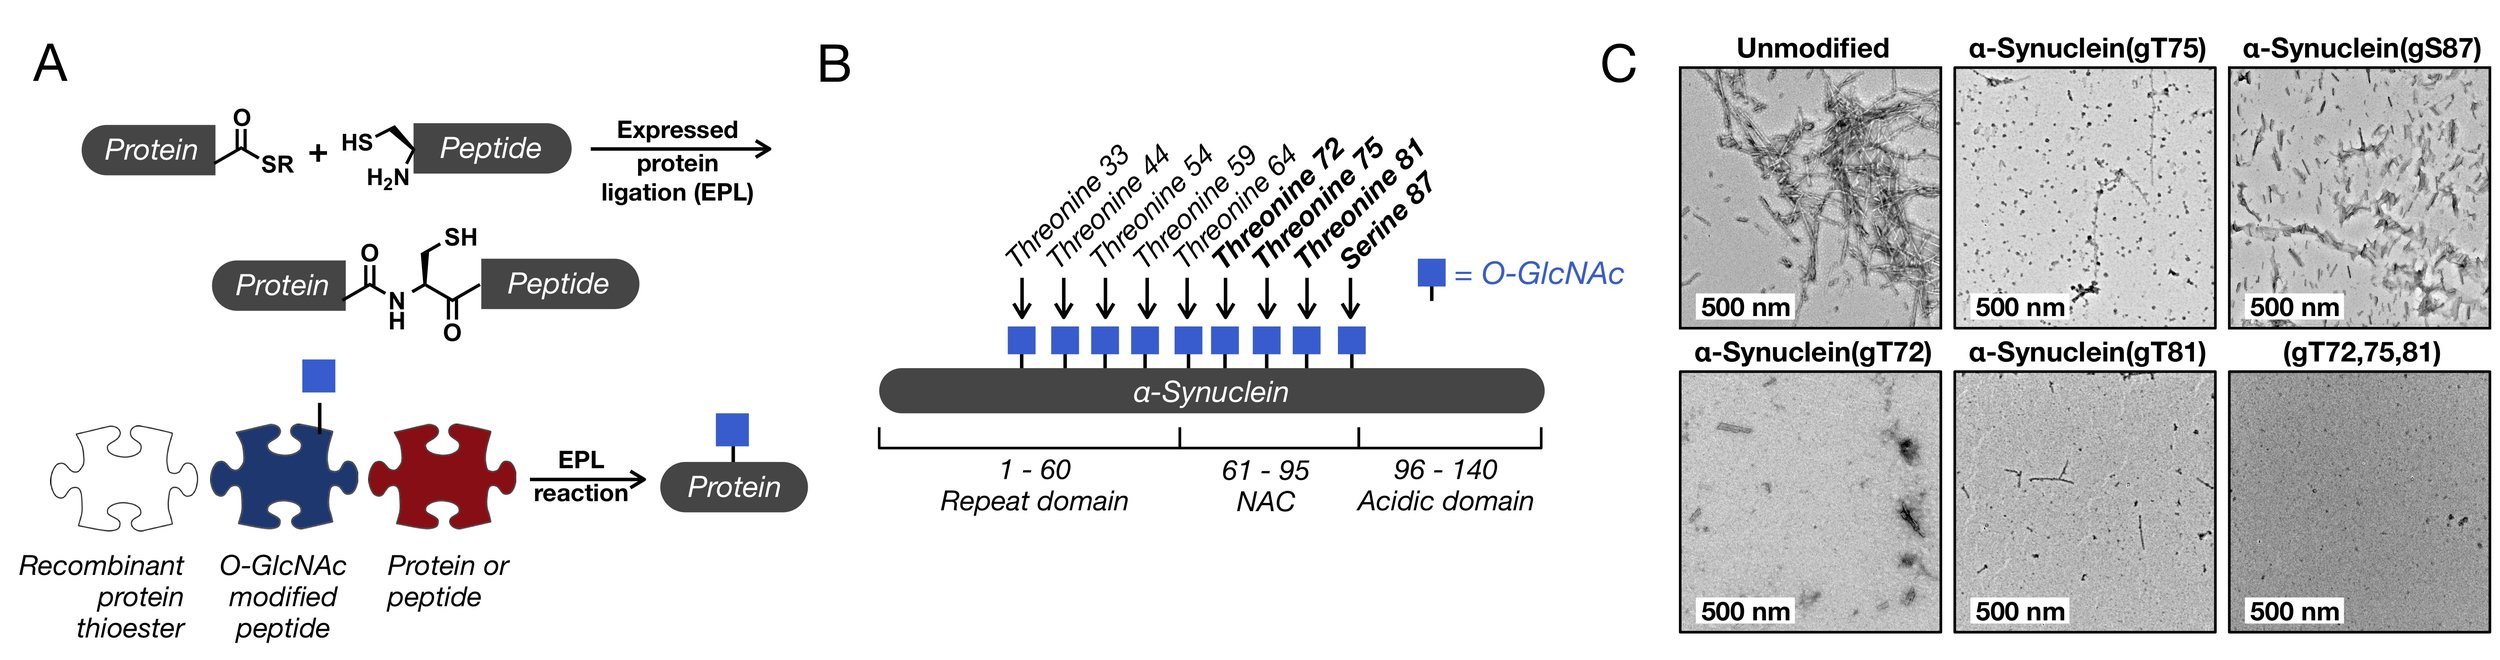 Figure 2. Synthesis of O-GlcNAcylated proteins and our application to α-synuclein.  (A) Expressed protein ligation (EPL) enables the selective reaction of recombinant and synthetic protein fragments in water with no protecting groups. Currently, this is the only way to make site-specifically O-GlcNAcylated proteins. (B) α-Synuclein is a small protein consisting of three domains: an N-terminal repeat domain that mediates its interactions with membranes, the central non-amyloid component (NAC) domain that is responsible for protein aggregation, and a C-terminal acidic domain. Nine different serines and threonines in α-synuclein have been found to be O-GlcNAcylated. We have studied the four different sites bolded. (C) O-GlcNAc alters the aggregation of α-synuclein monomers into fibers. Unmodified α-synuclein or the indicated O-GlcNAcylated proteins (50 μM) were subjected to aggregation conditions (agitation at 37 °C). After 168 h, the reactions were analyzed by transmission electron microscopy (TEM).